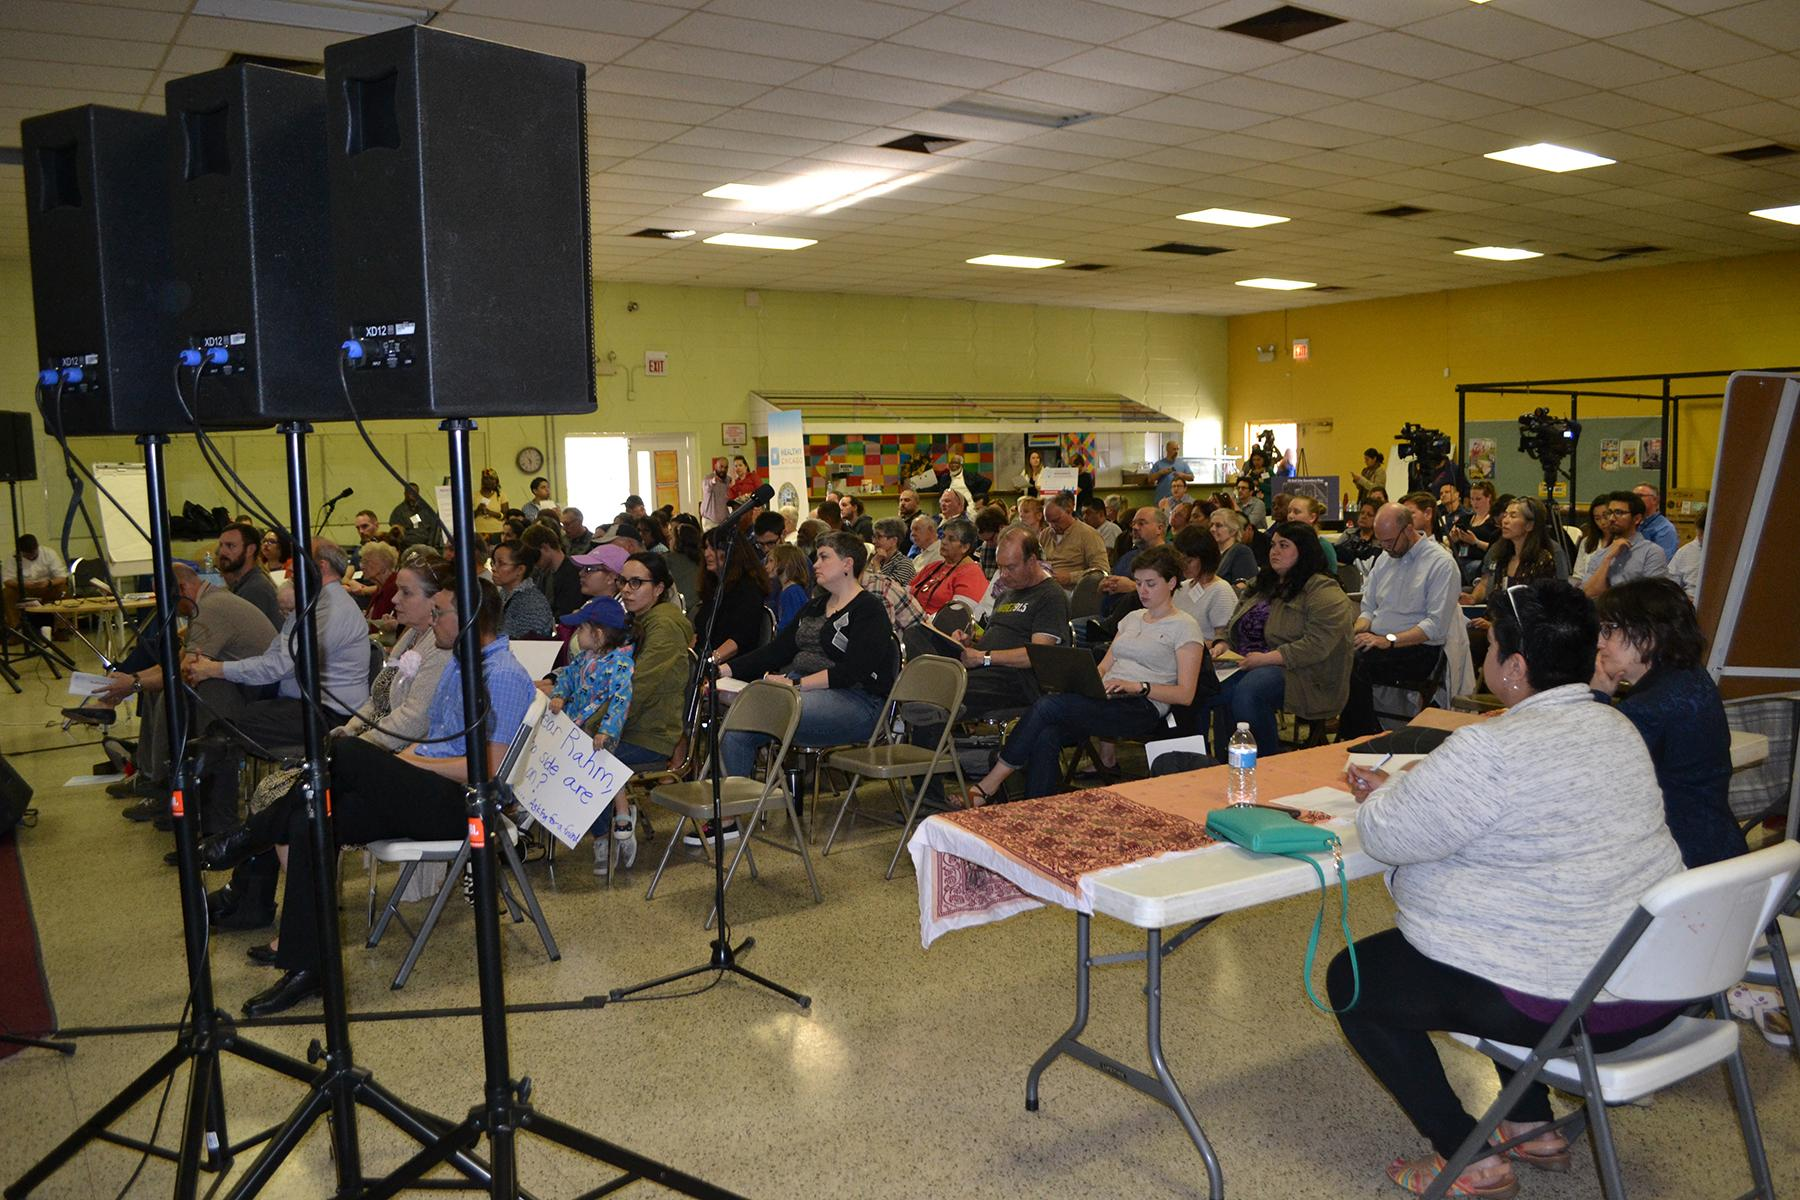 About 100 residents attended a public meeting Thursday to address manganese pollution on the Southeast Side. (Alex Ruppenthal / Chicago Tonight)